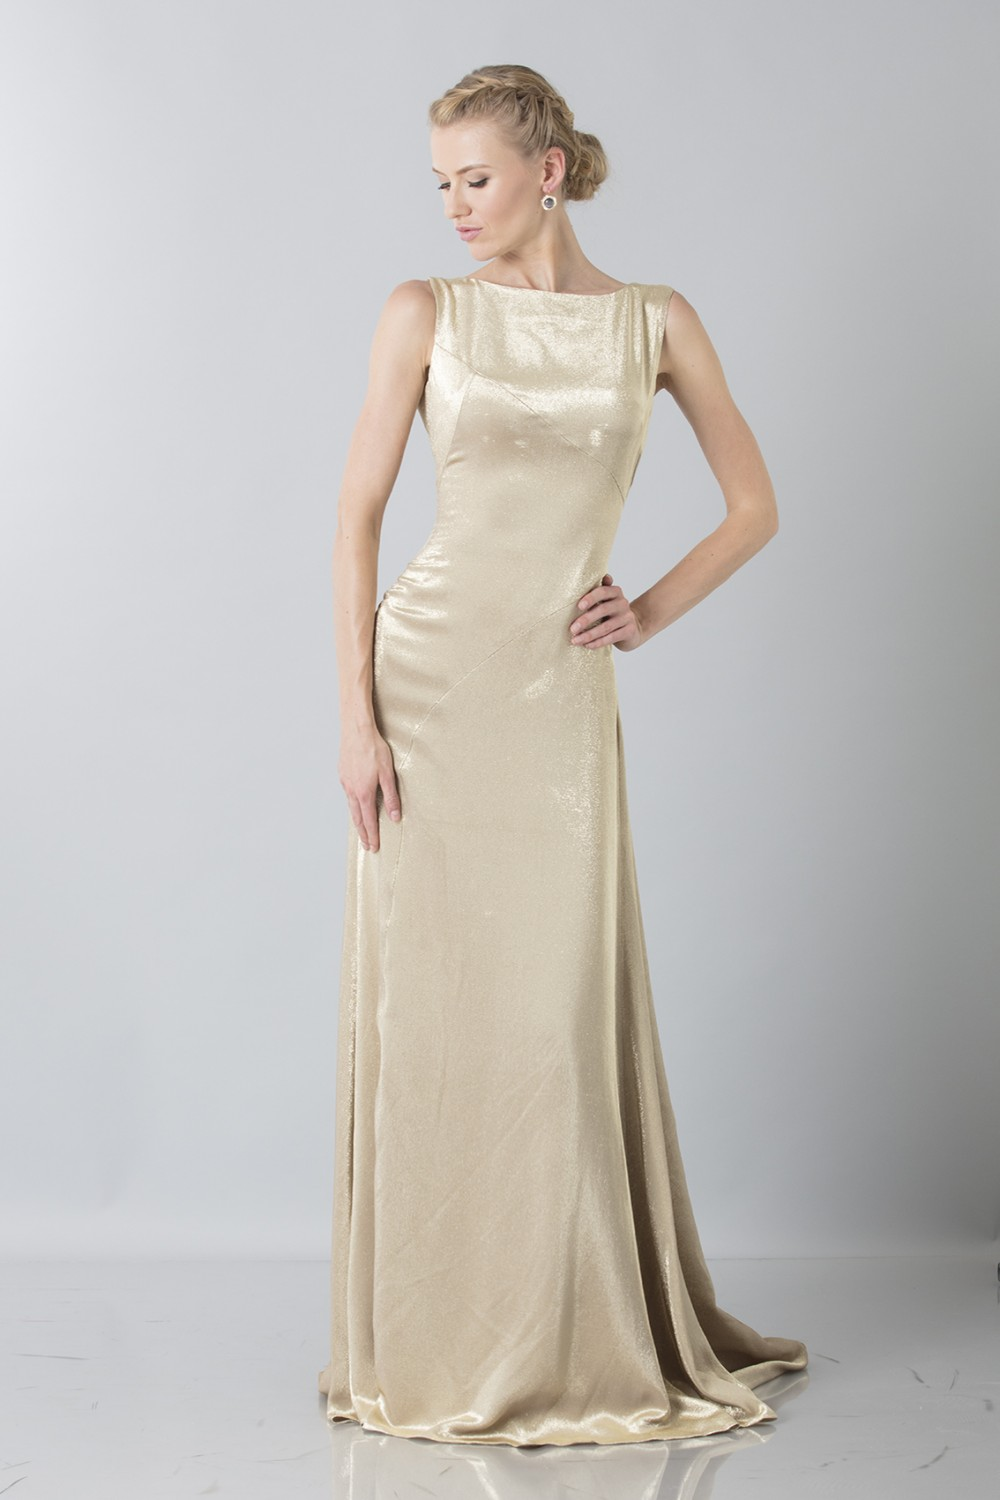 Gown with shiny golden texture